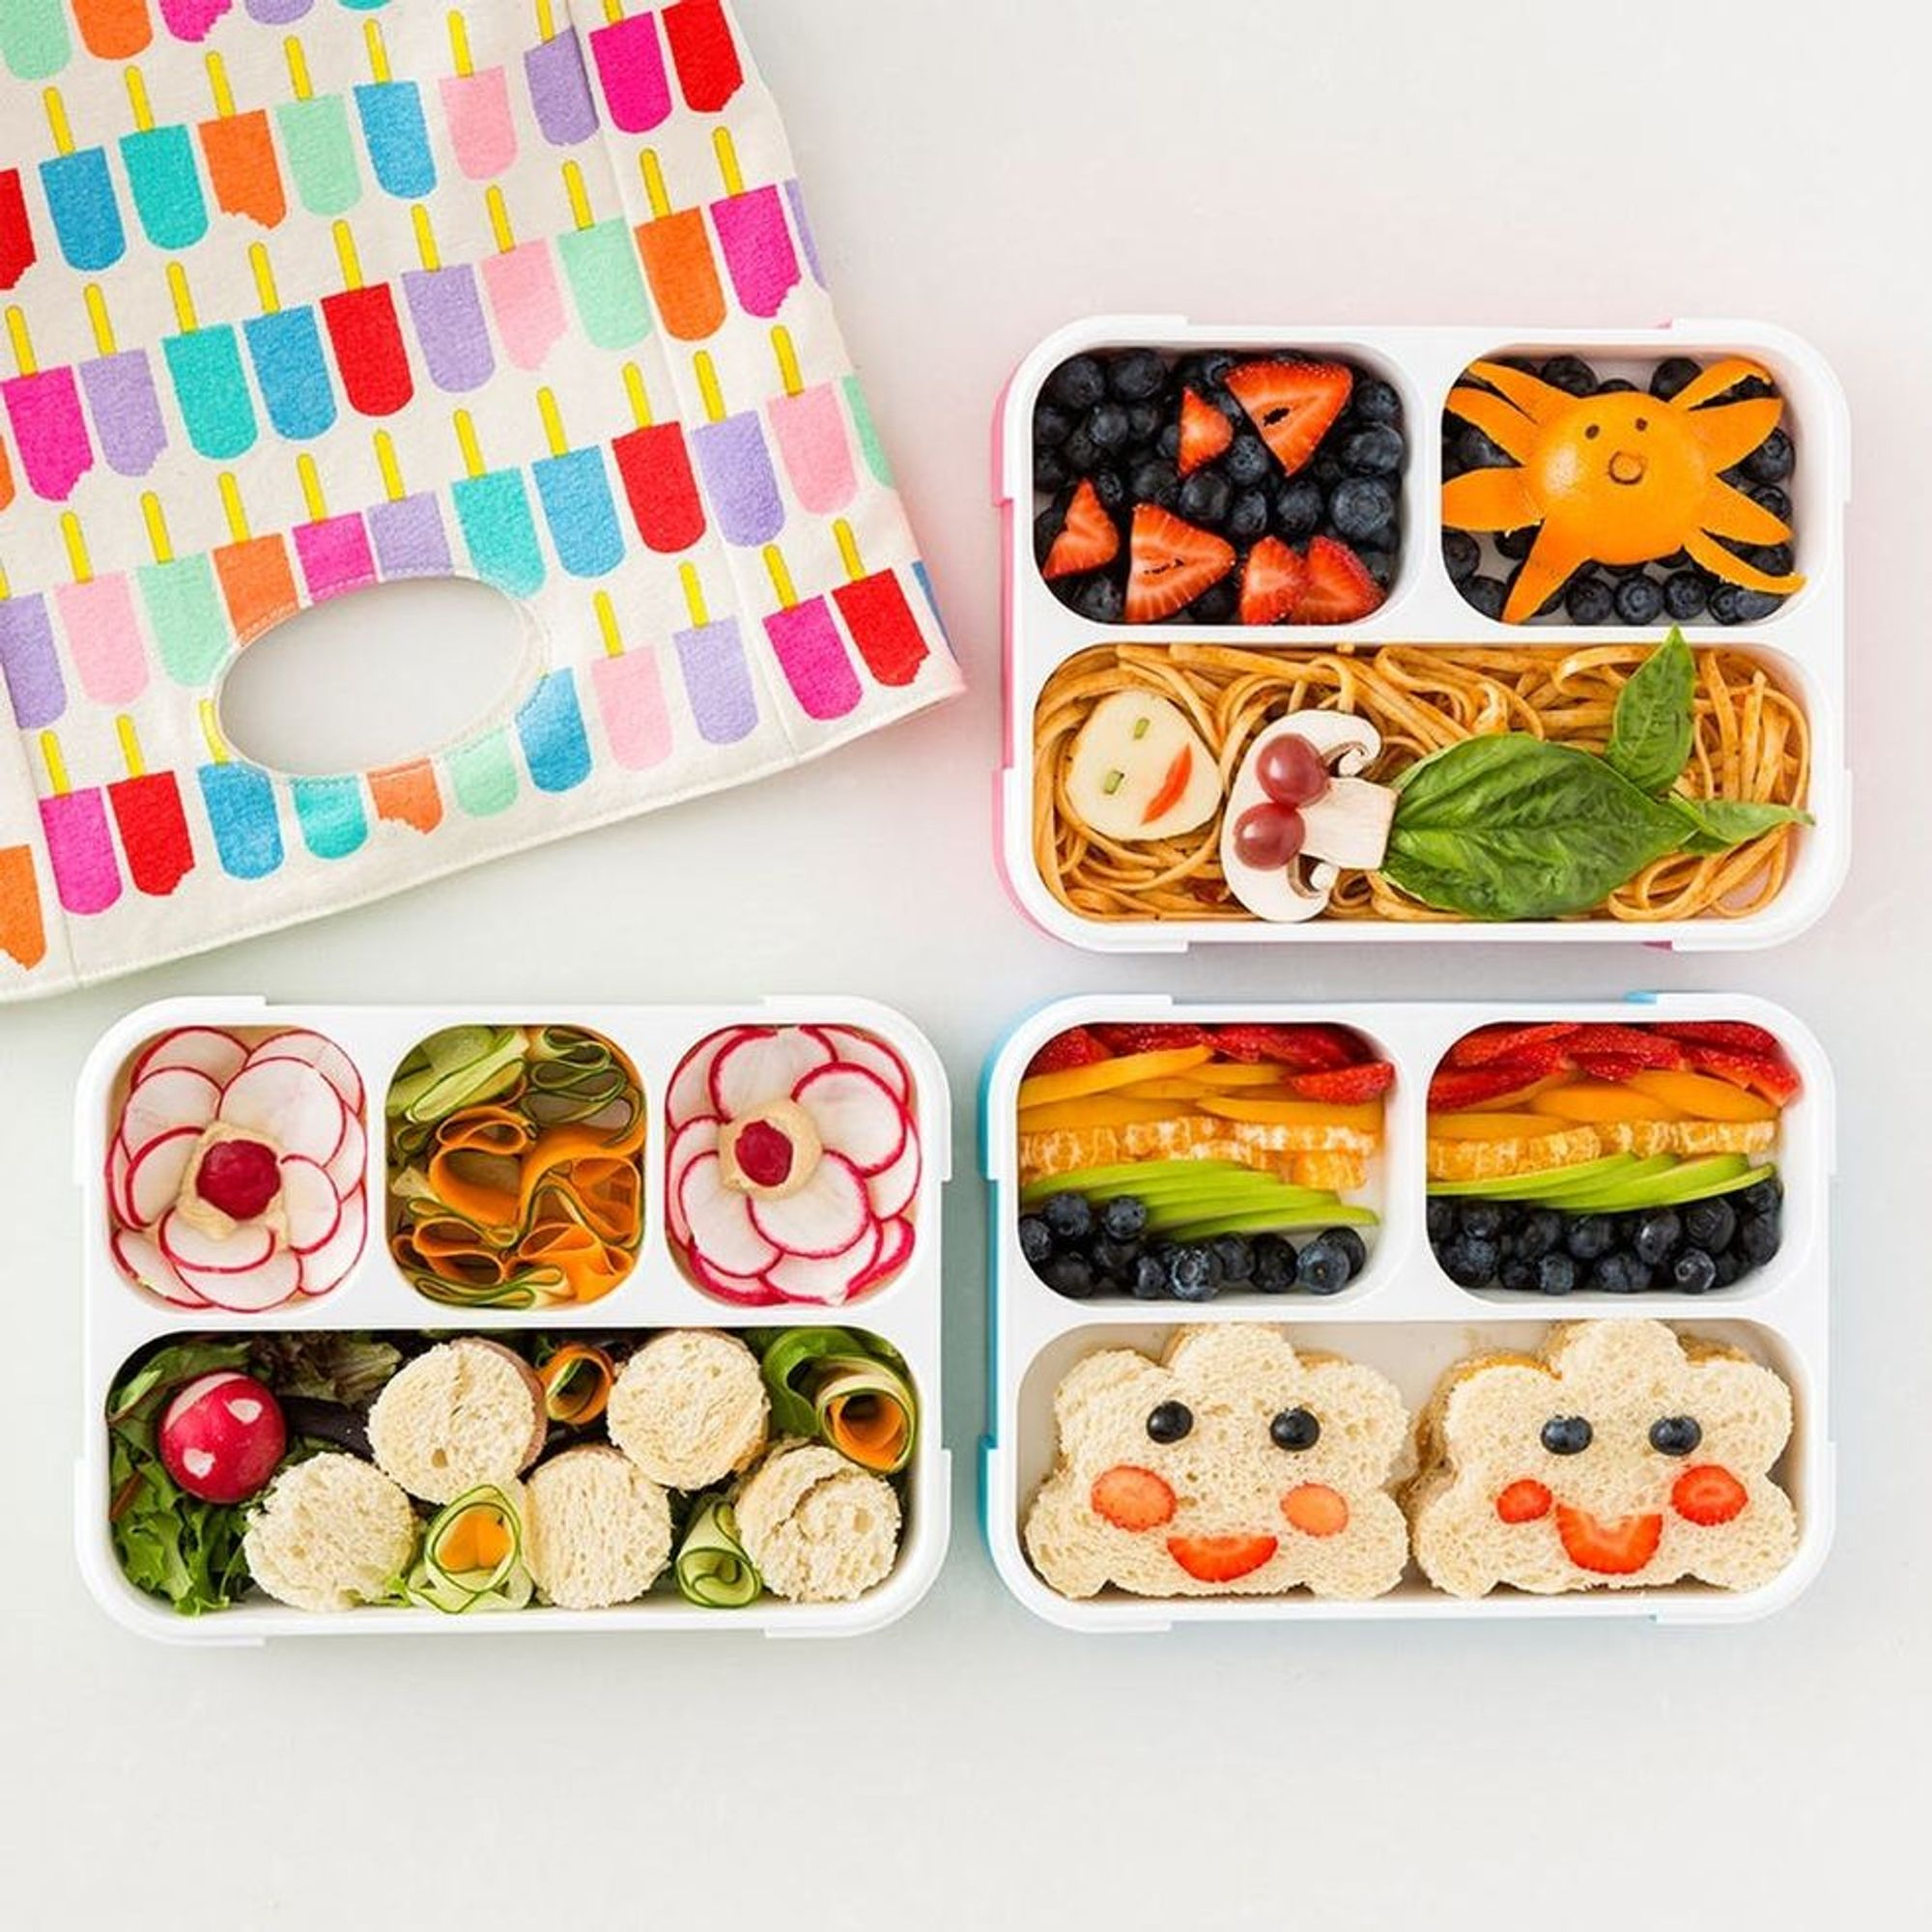 3 Quick Easy Bento Box Lunch Ideas For Back To School